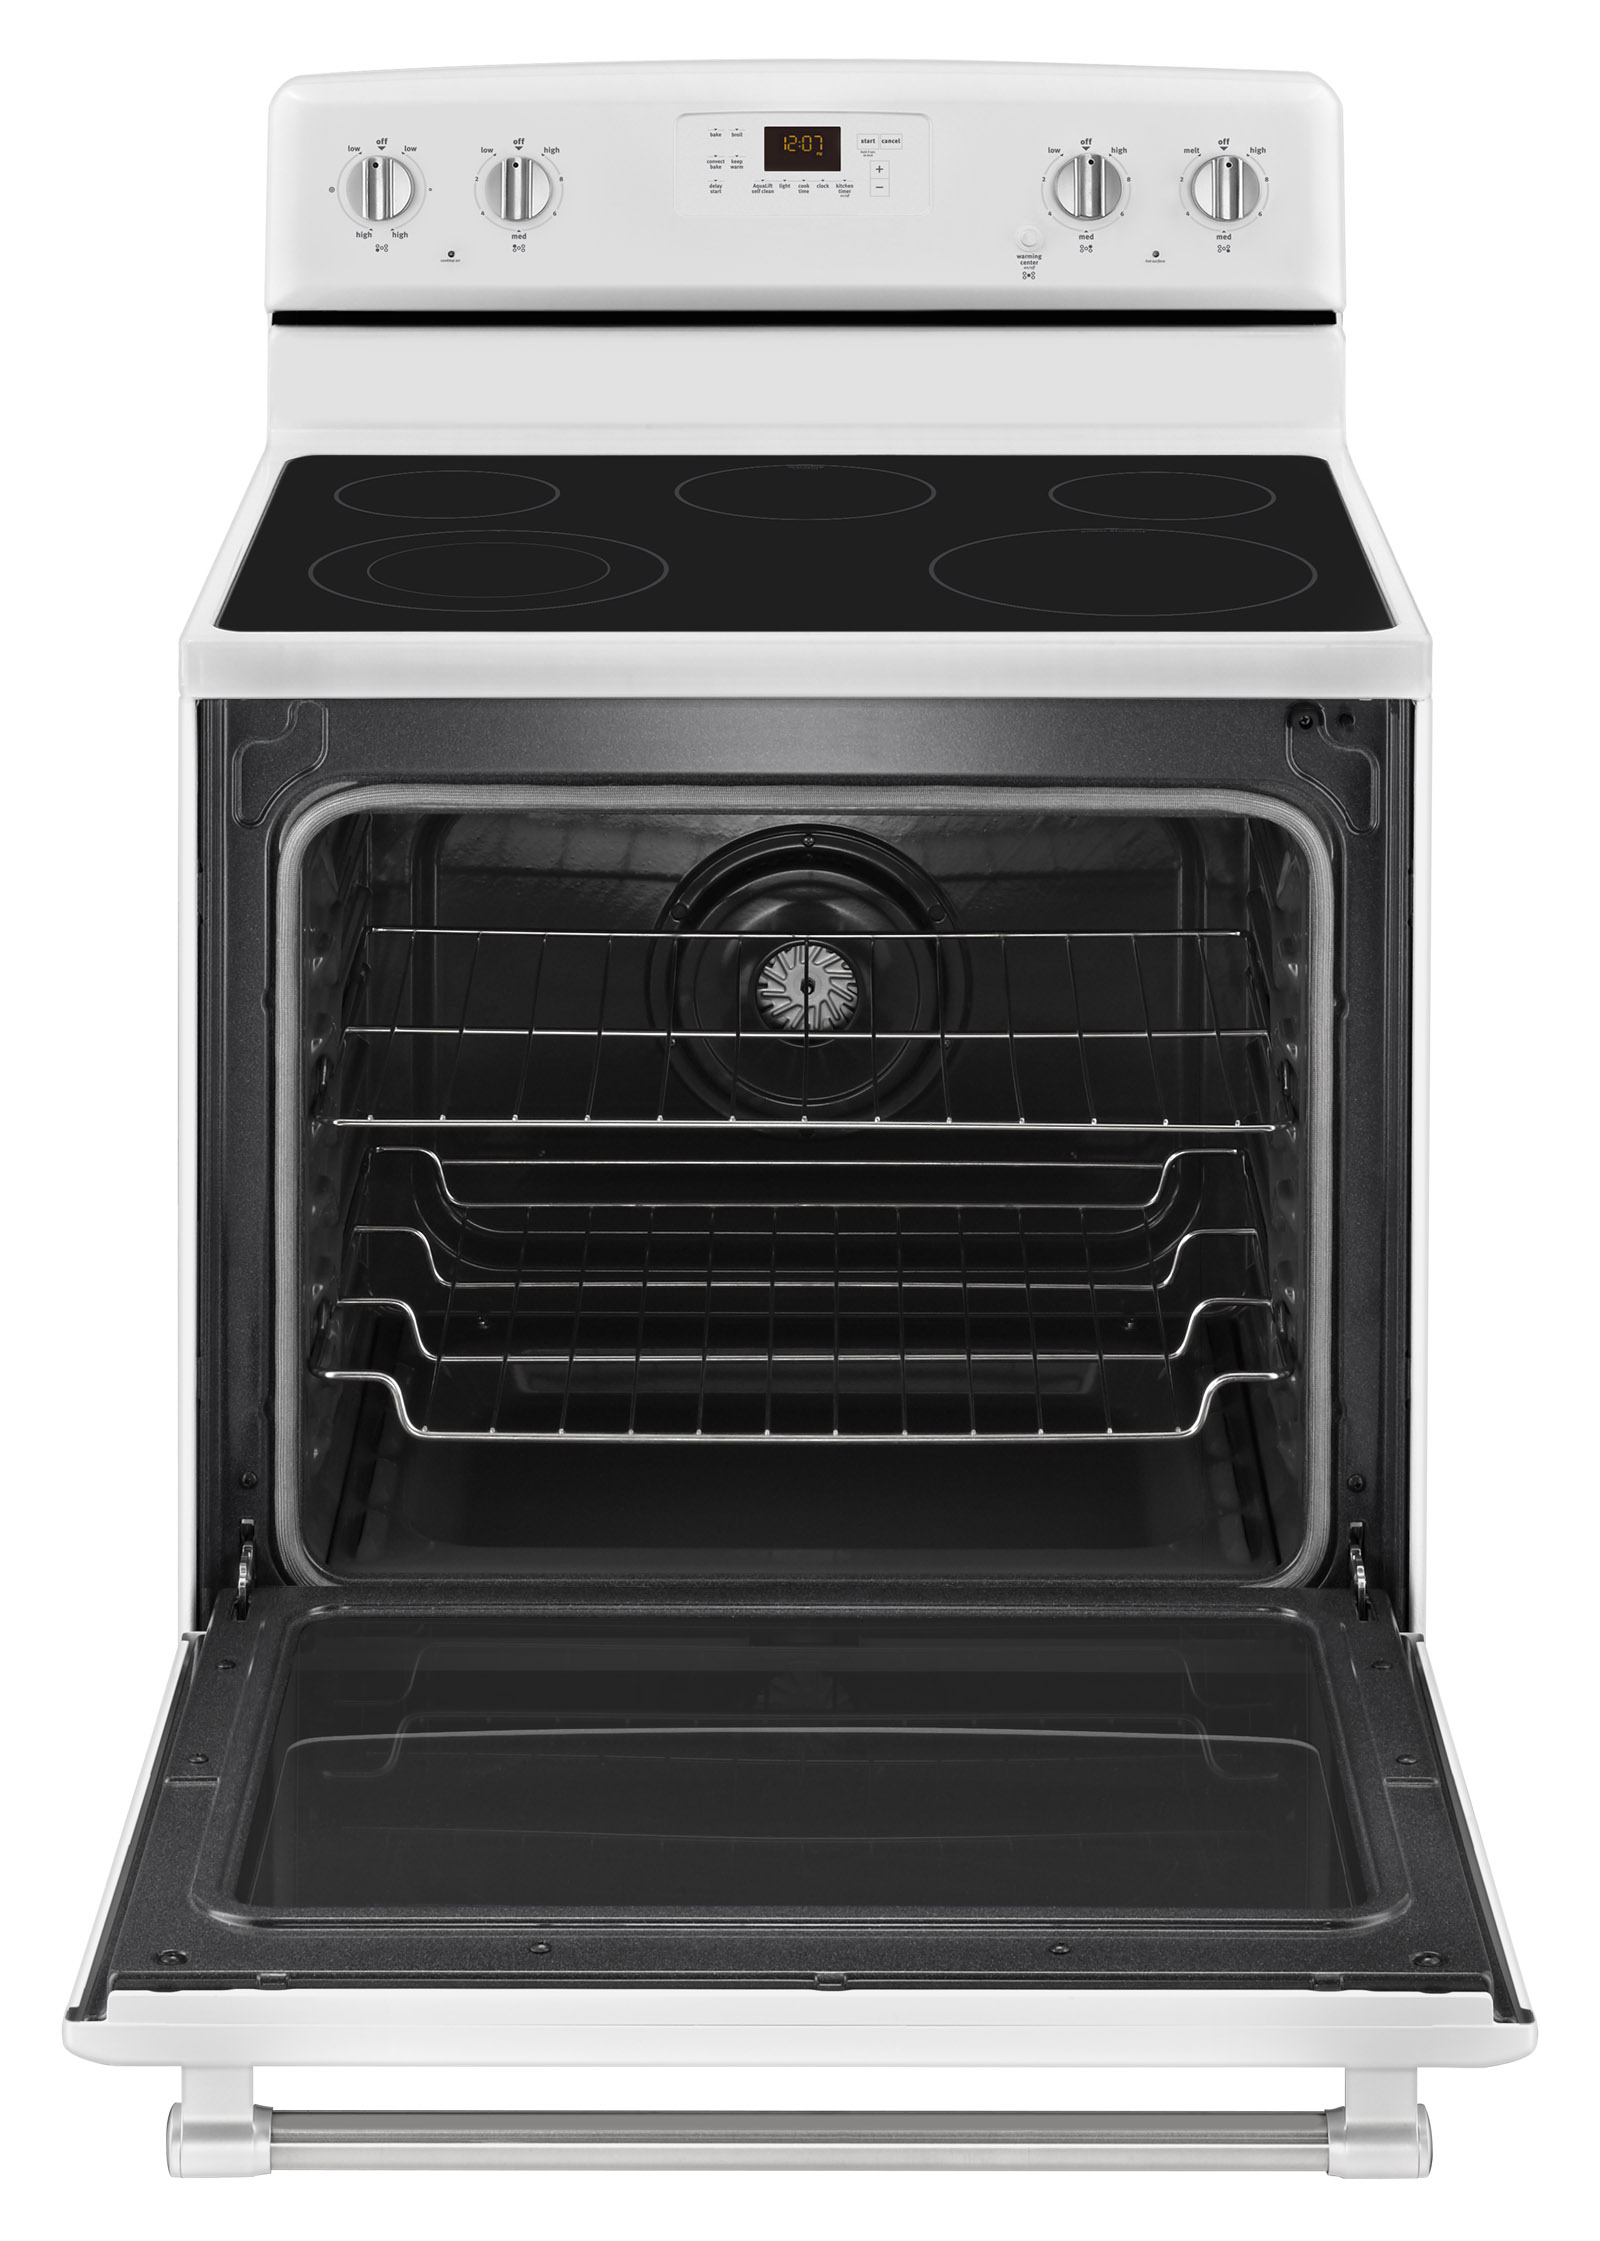 Maytag MER8700DH 6.2 cu. ft. Electric Range w/ 5th Element - White w/ Stainless Handle